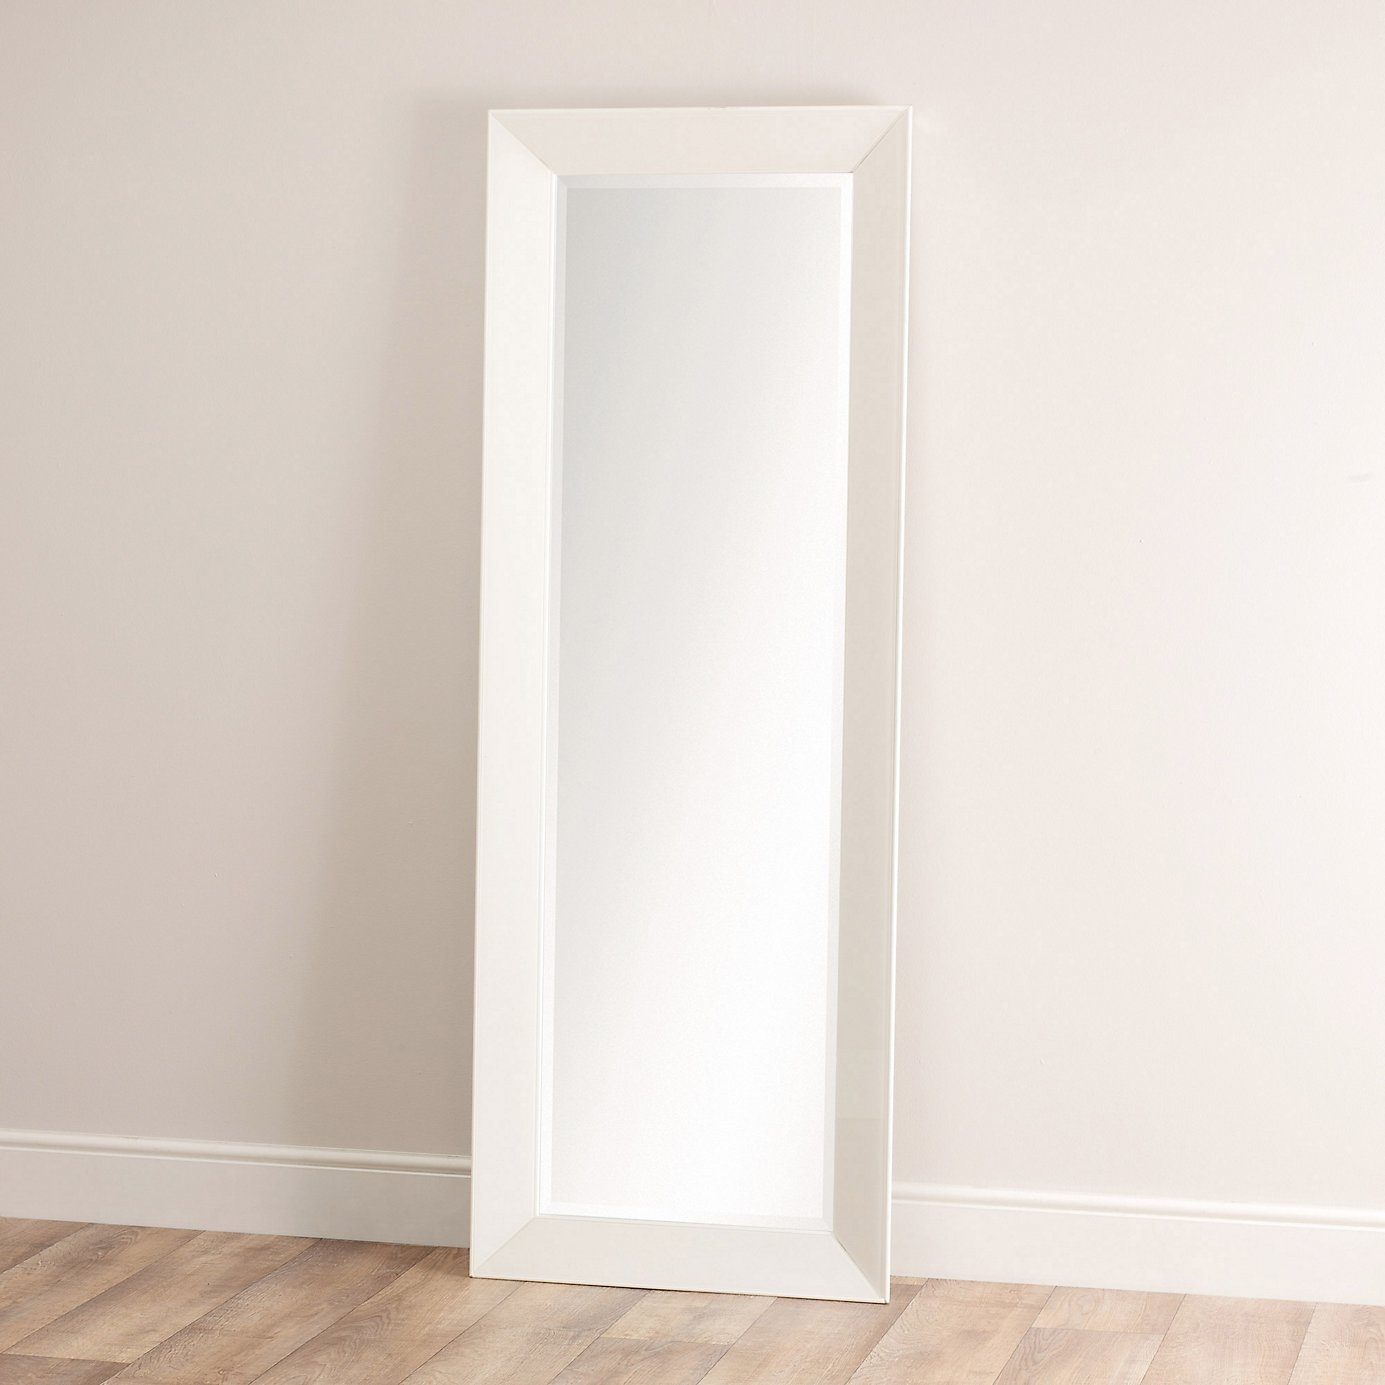 Permalink to White Framed Full Length Wall Mirror